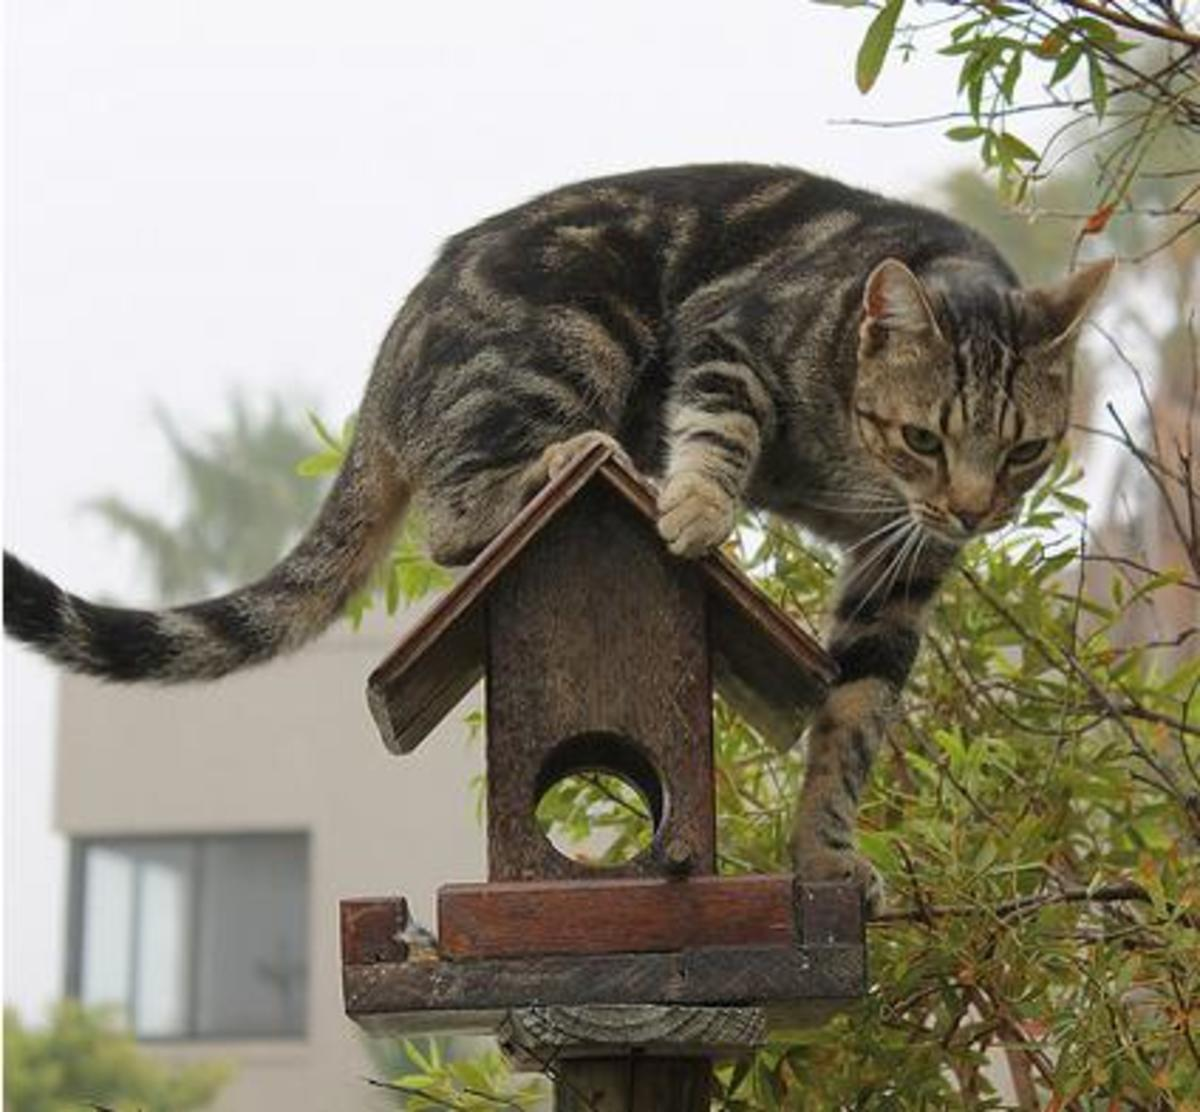 Owned pet cats often raid people's bird feeders